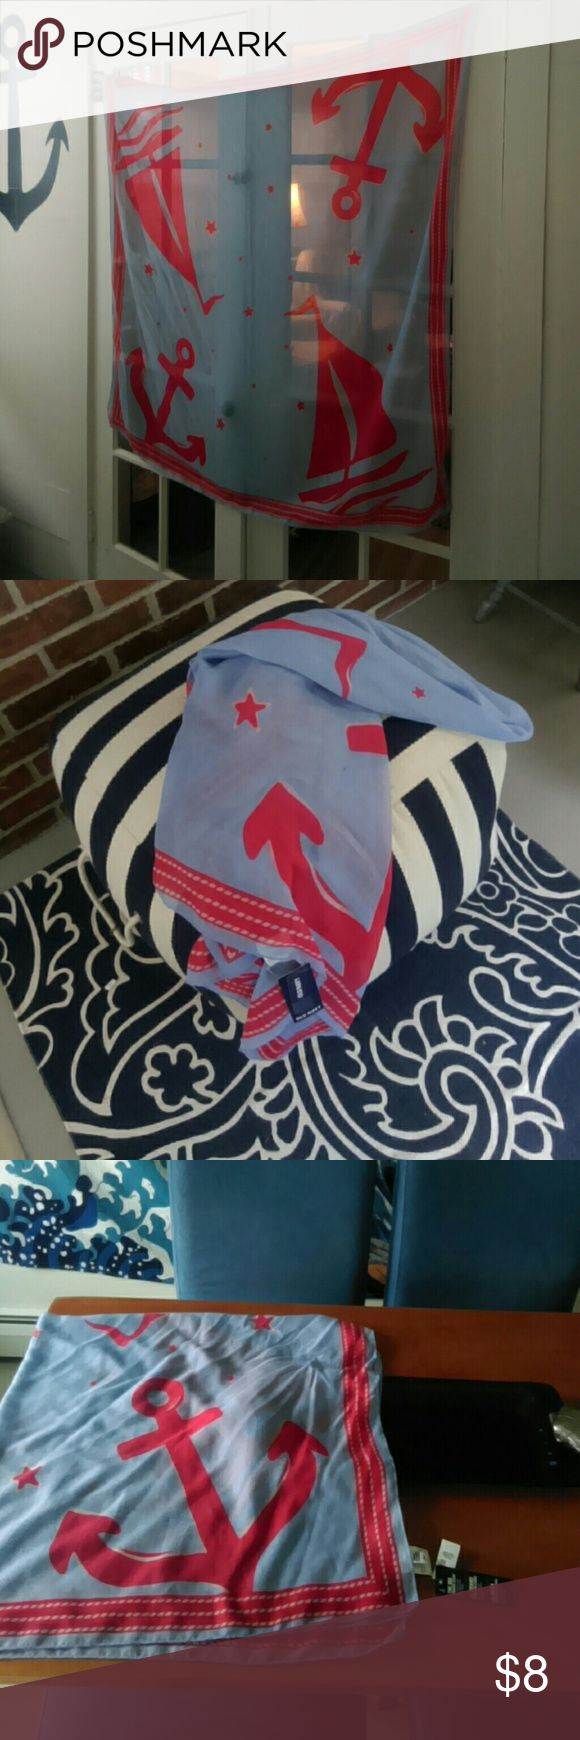 Anchors Away Scarf SEASIDE themed scarf red sailboat, stars and anchors printed on a sea of light blue red rope border! 48in. SQUARE, light weight the Big square scarf, more fabric equals more opportunities for fun styling  NWT......perfect to wear or decorate!. BUNDLES WELCOME, no Trades or Modeling, Reasonable Offers Considered Pet, Perfume Smoke Free Home Old Navy Accessories Scarves & Wraps